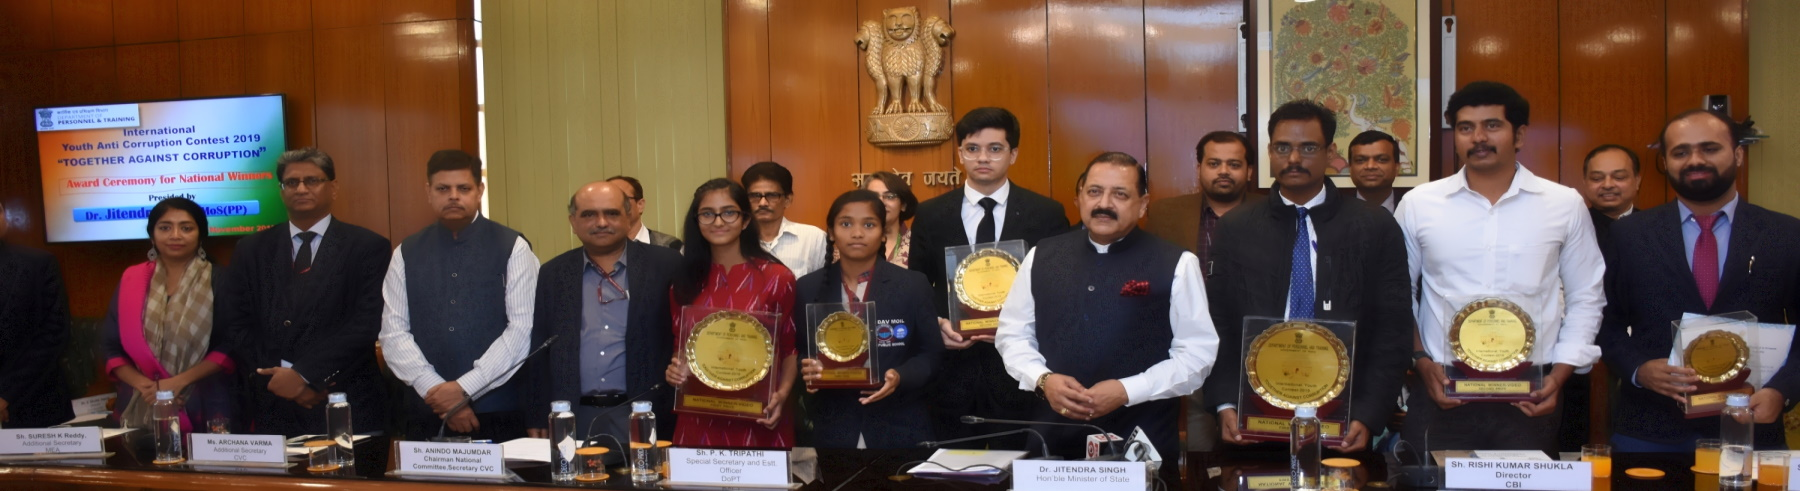 Honorable MOS(PP) Dr. Jitendra Singh presided over - Award distribution ceremony for National  winners of International Youth Anti Corruption Contest 2019 Together Against Corruption